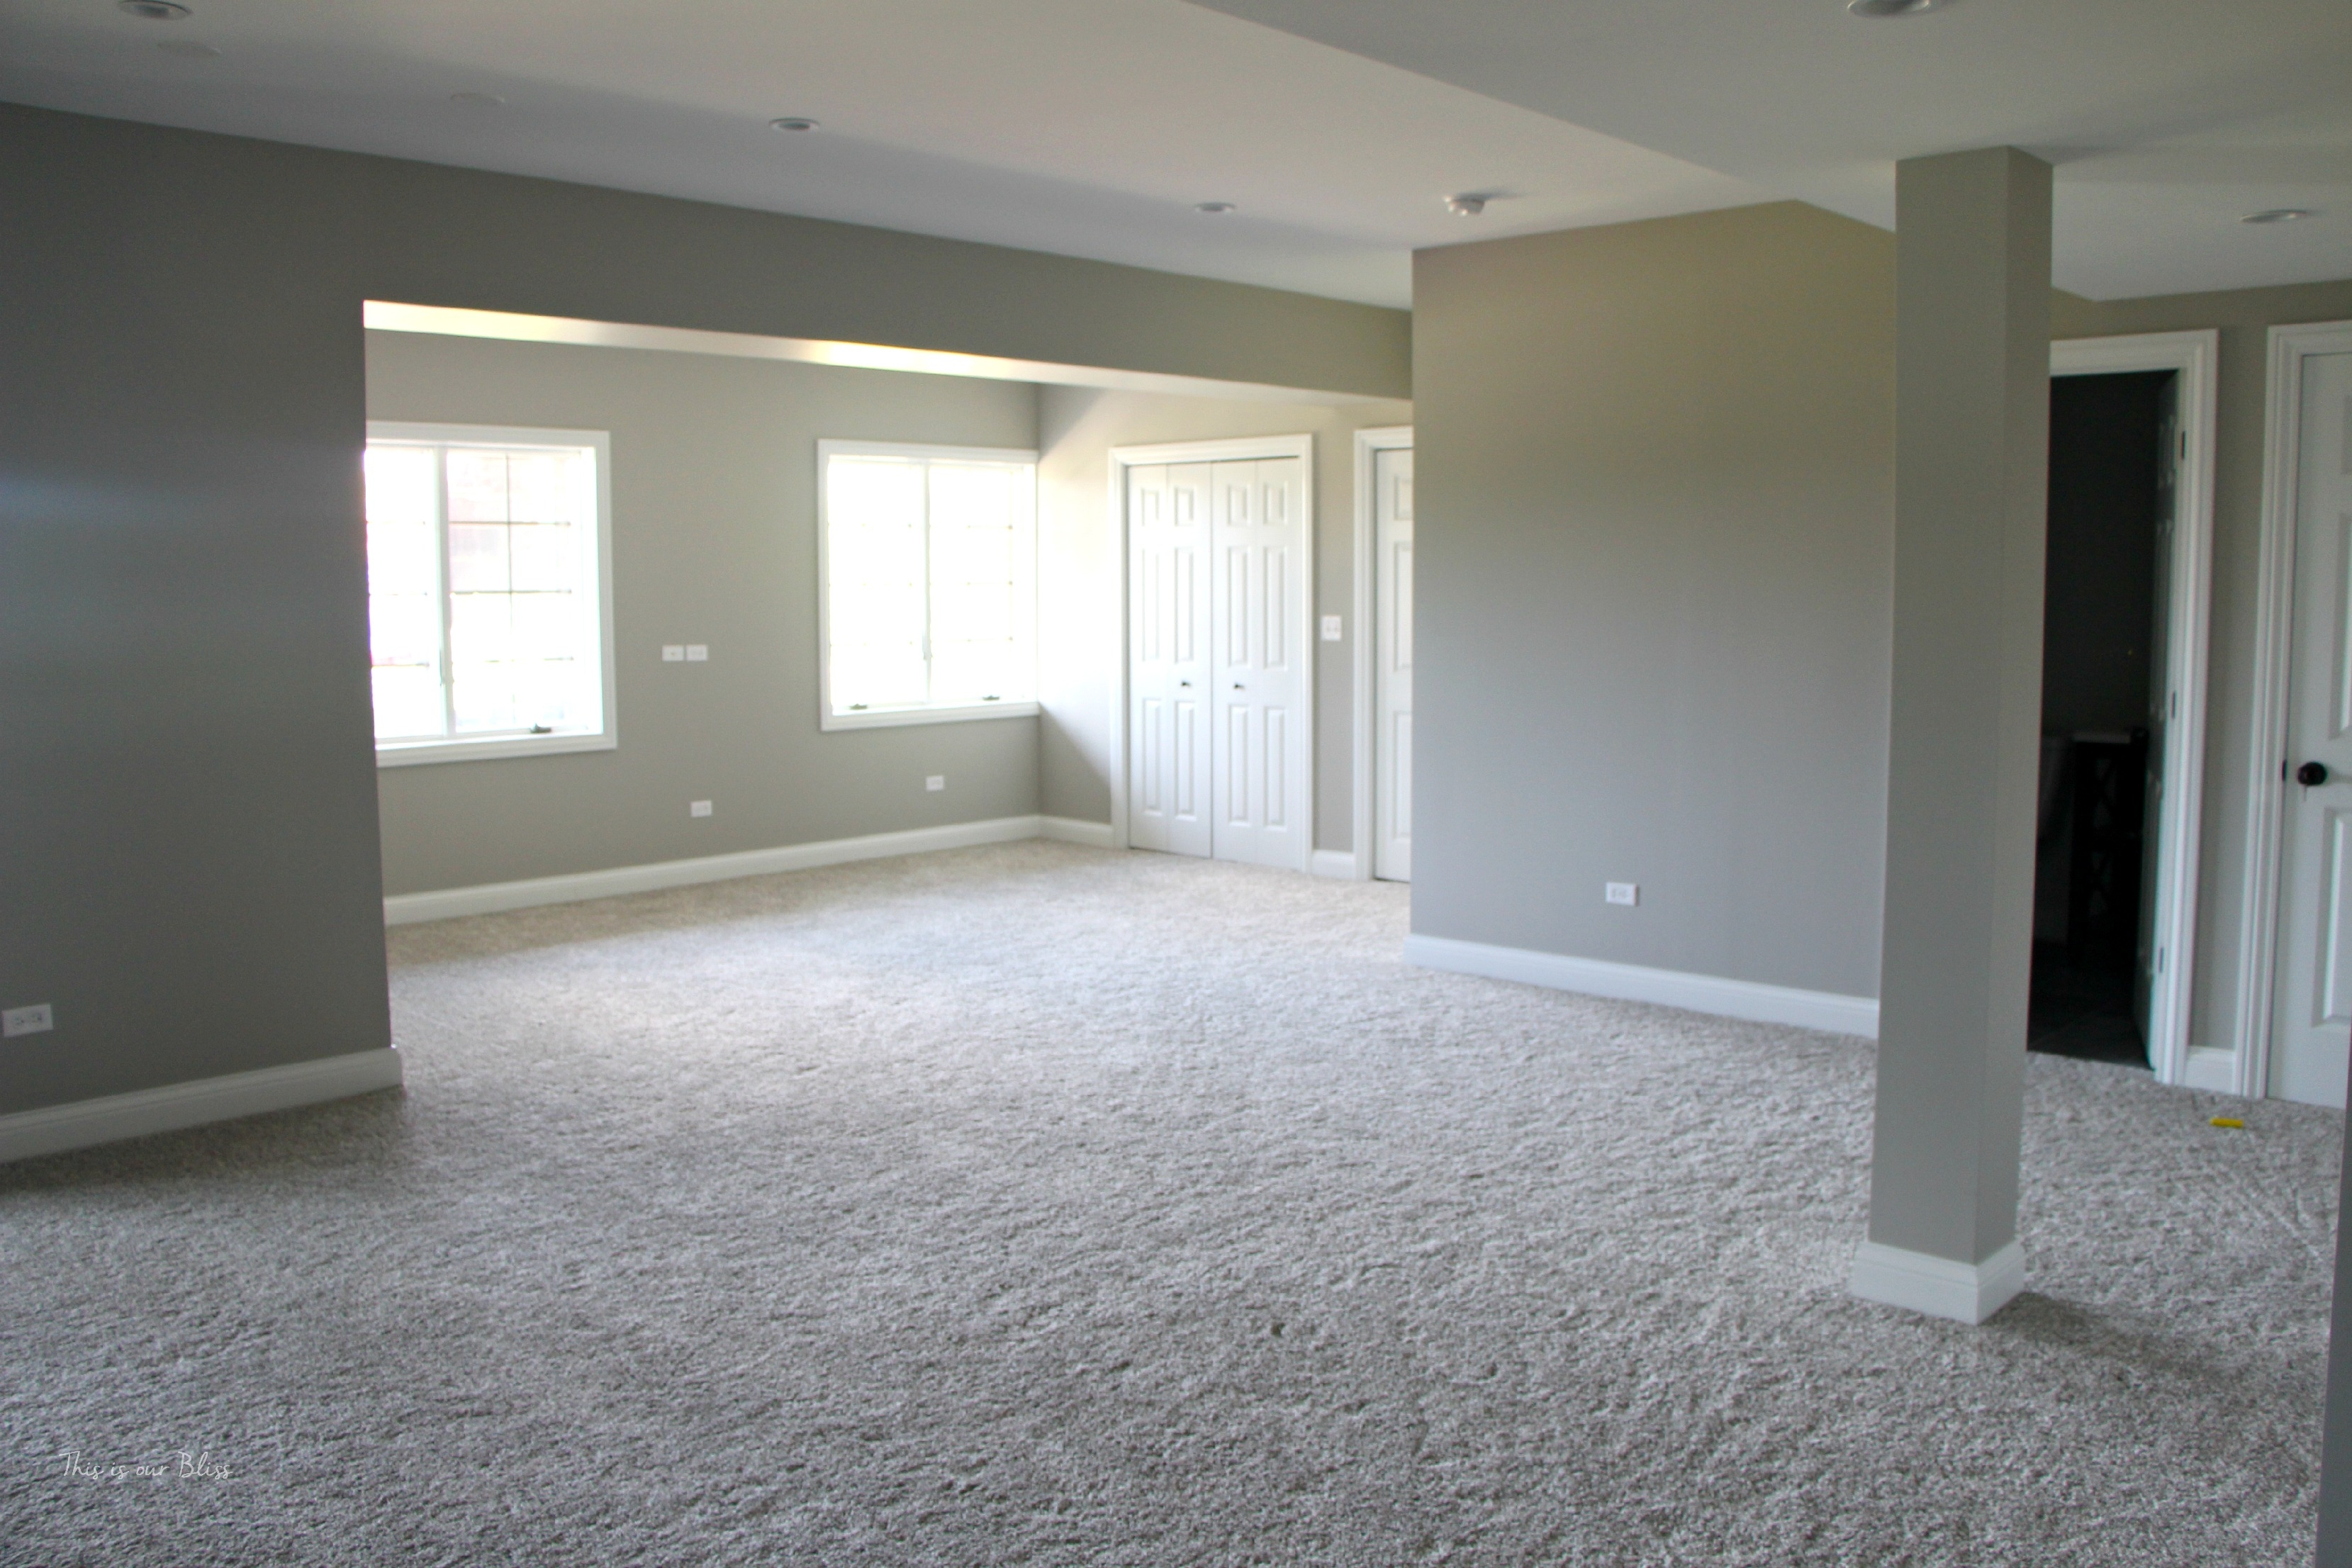 Deelat blog tips for carpet reinstallations for Best carpet for basement family room